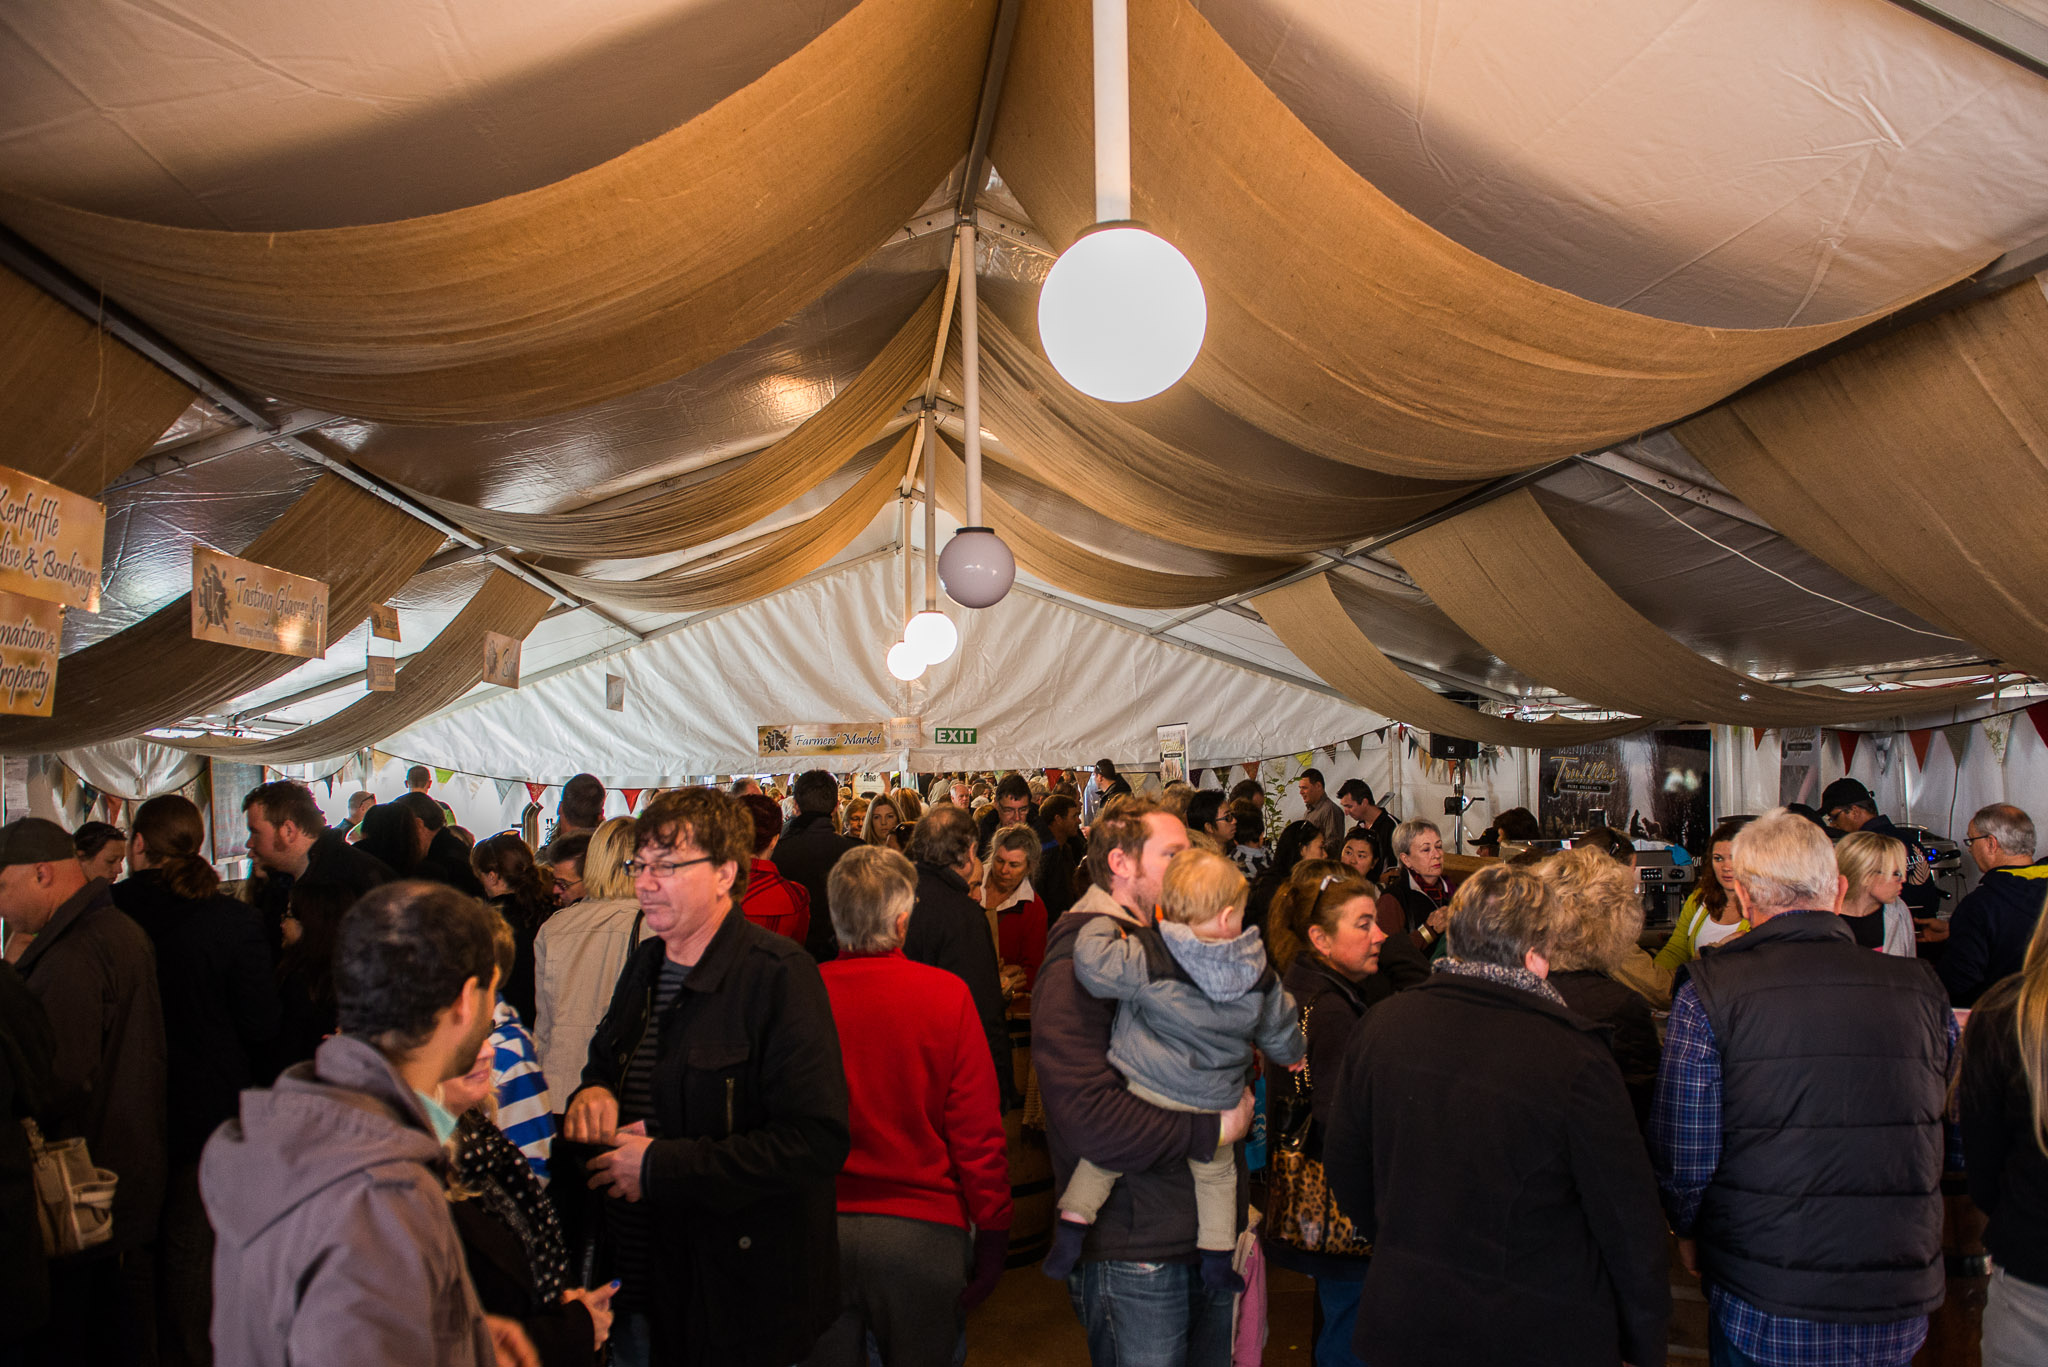 It got crazy busy in the tent!